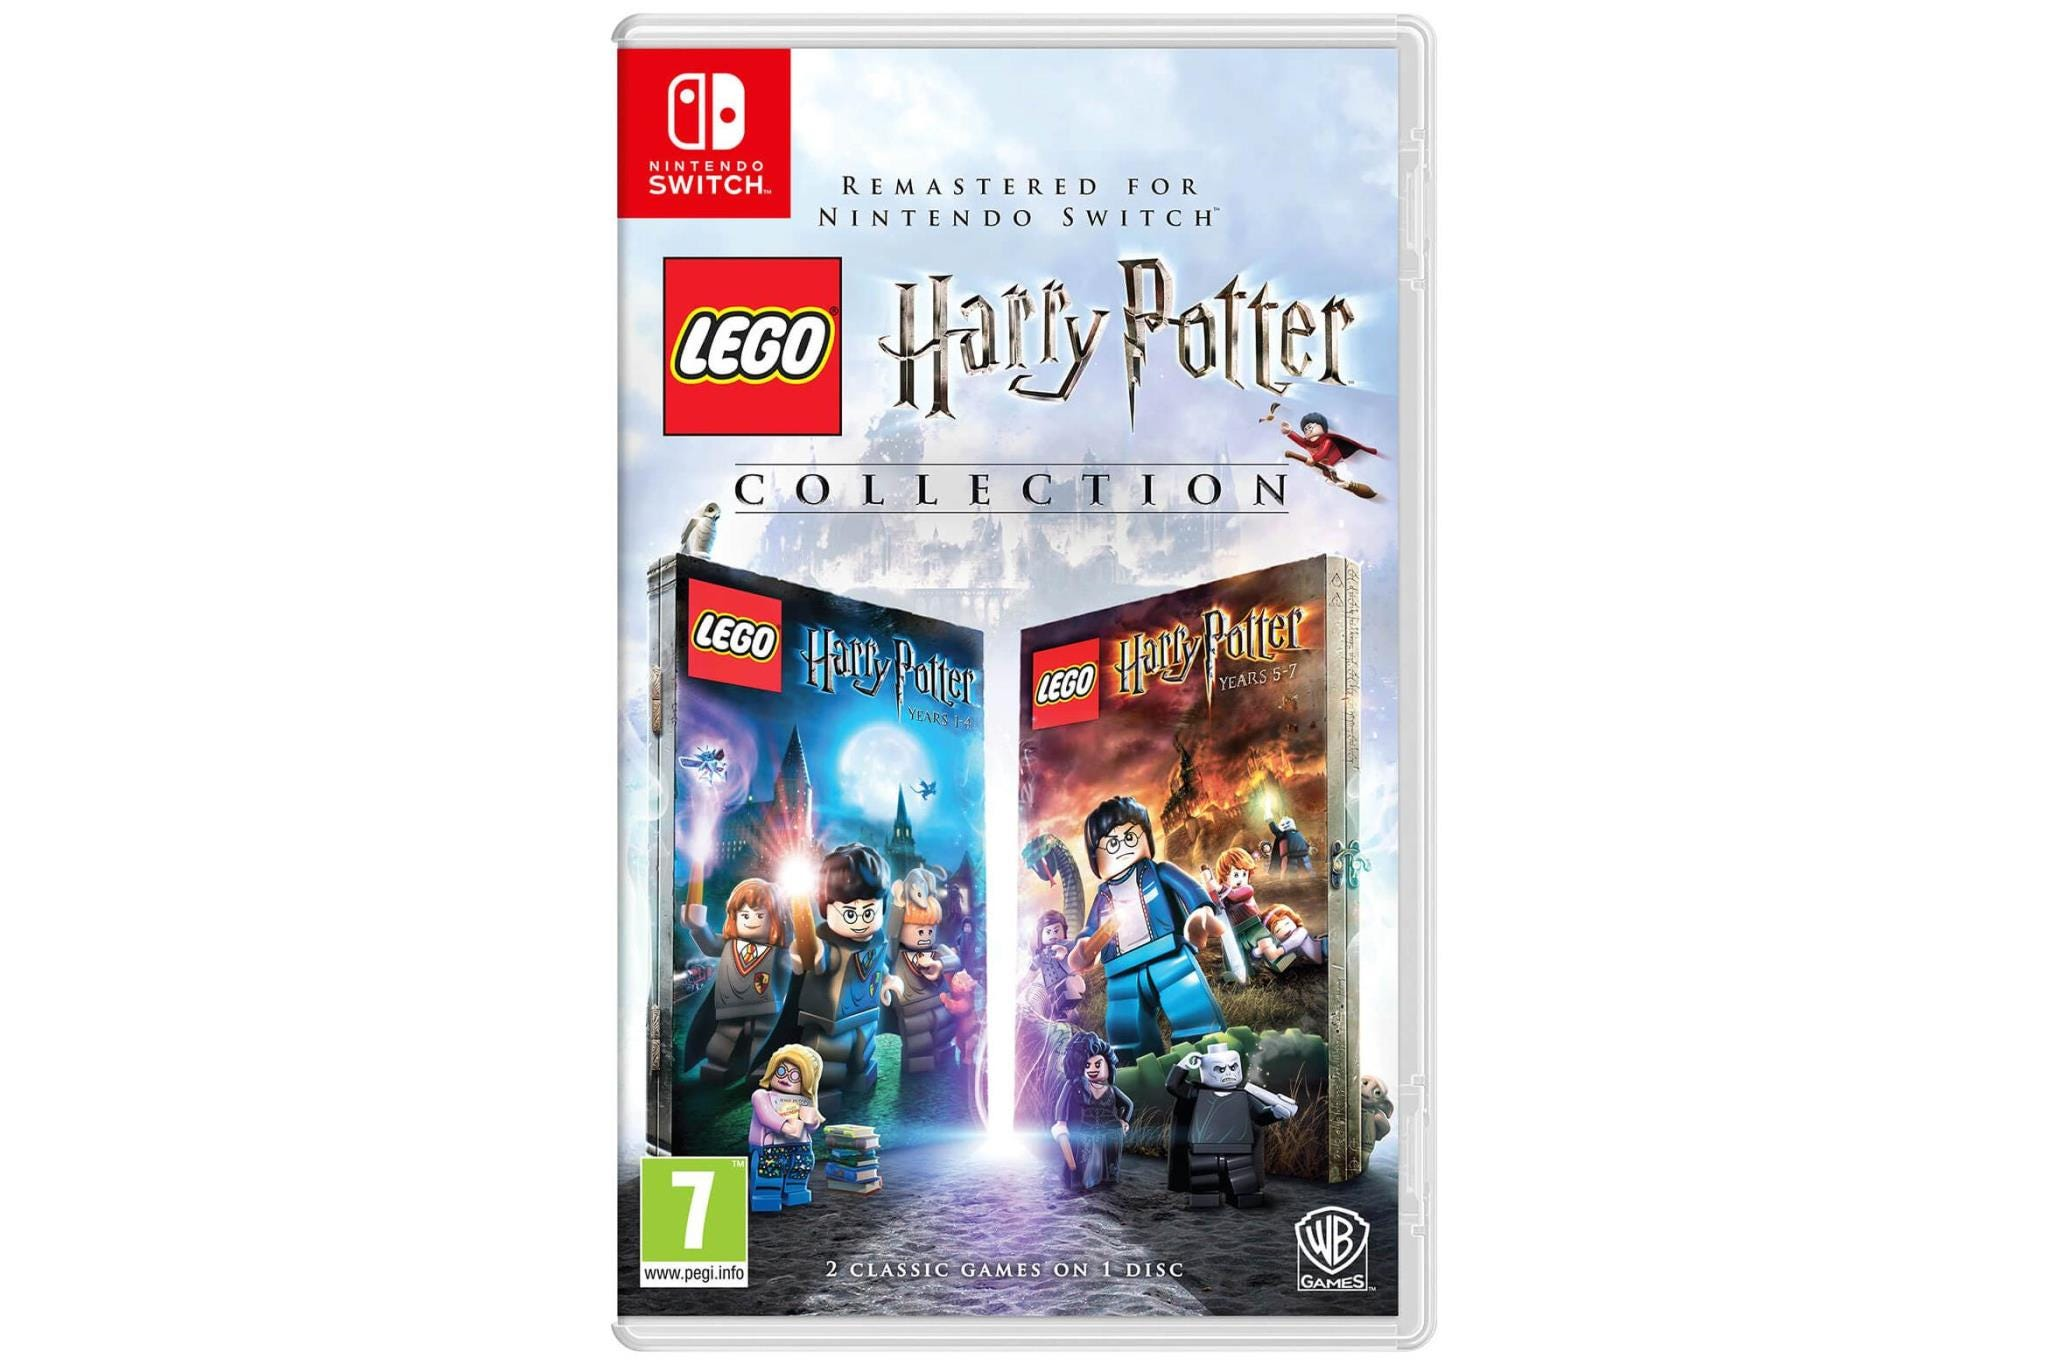 Nintendo Switch LEGO Harry Potter Collection Game